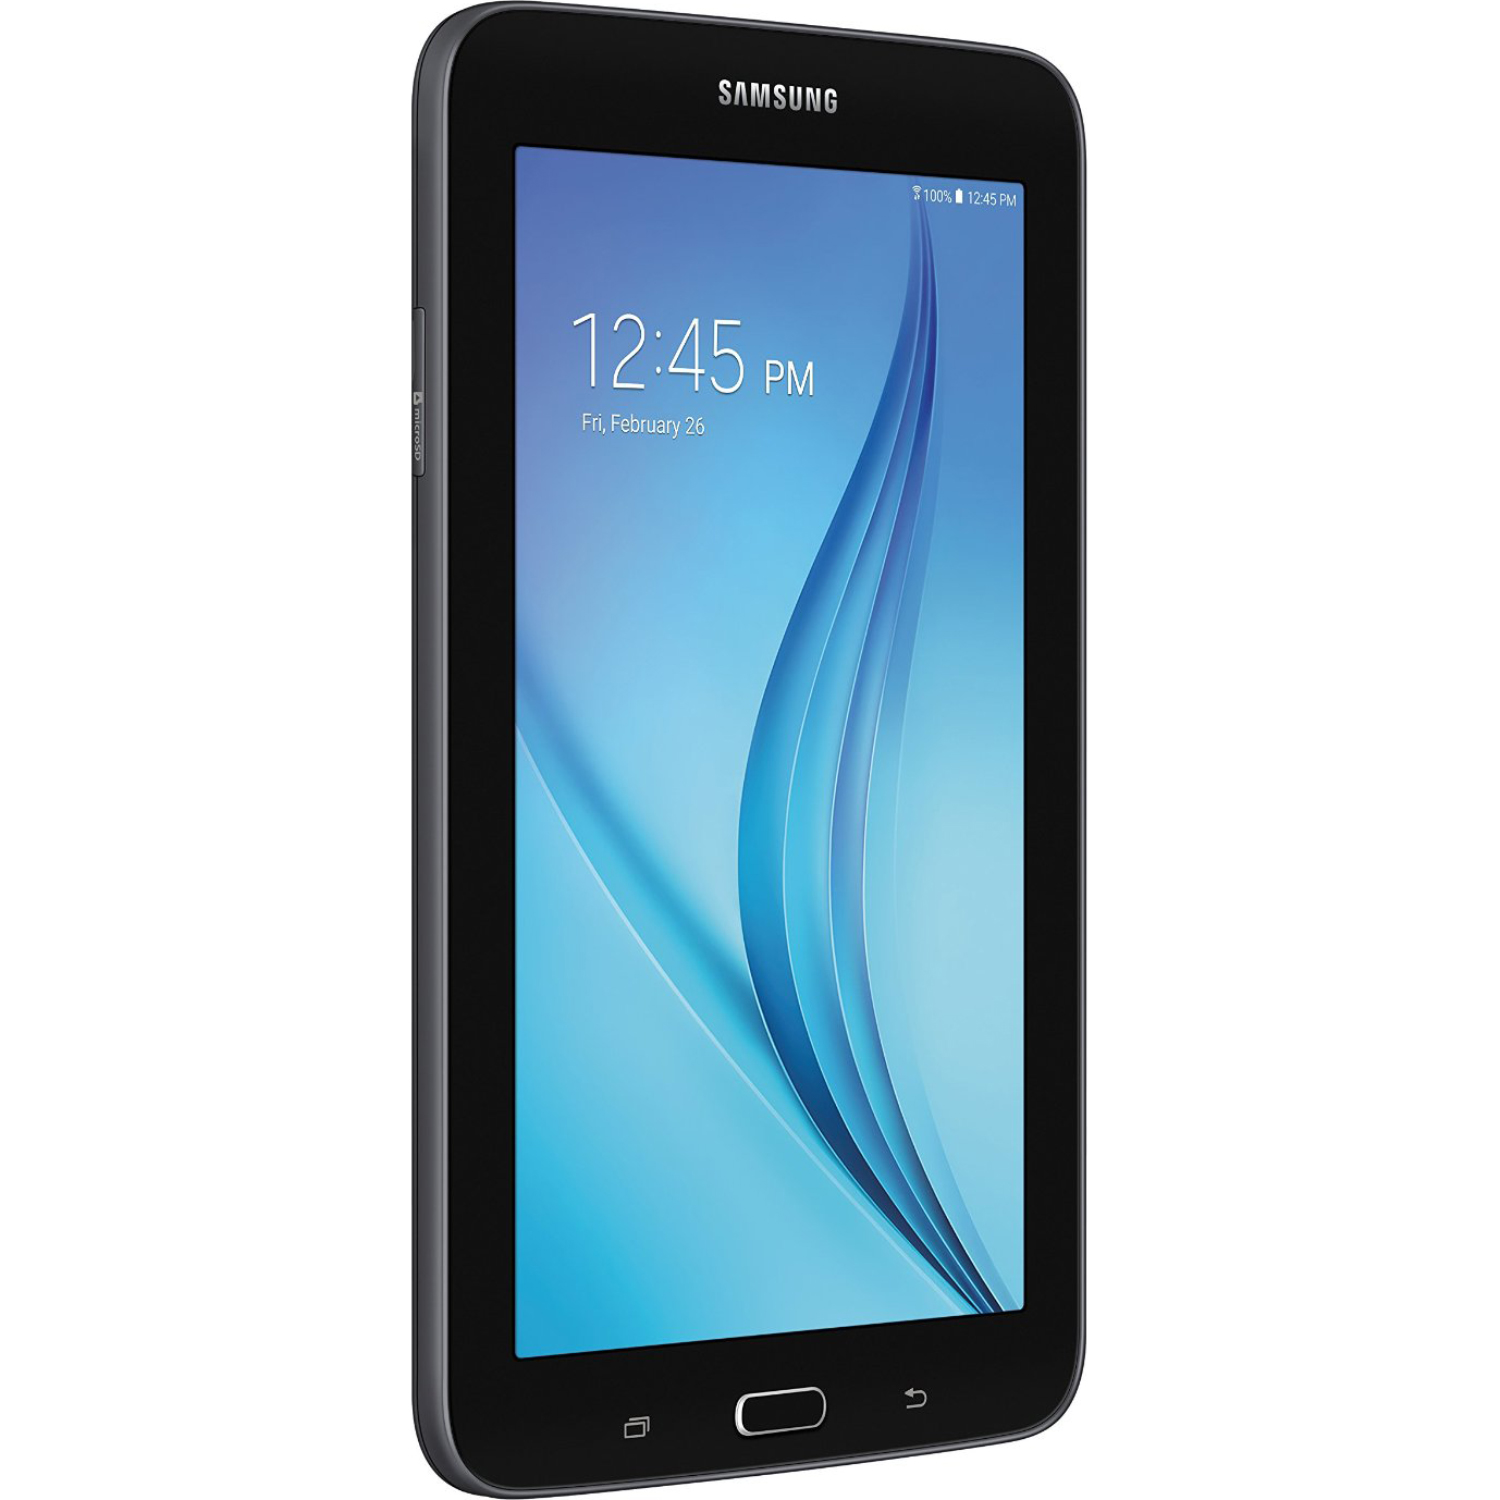 samsung galaxy tab e lite 7 0 8gb wi fi black. Black Bedroom Furniture Sets. Home Design Ideas